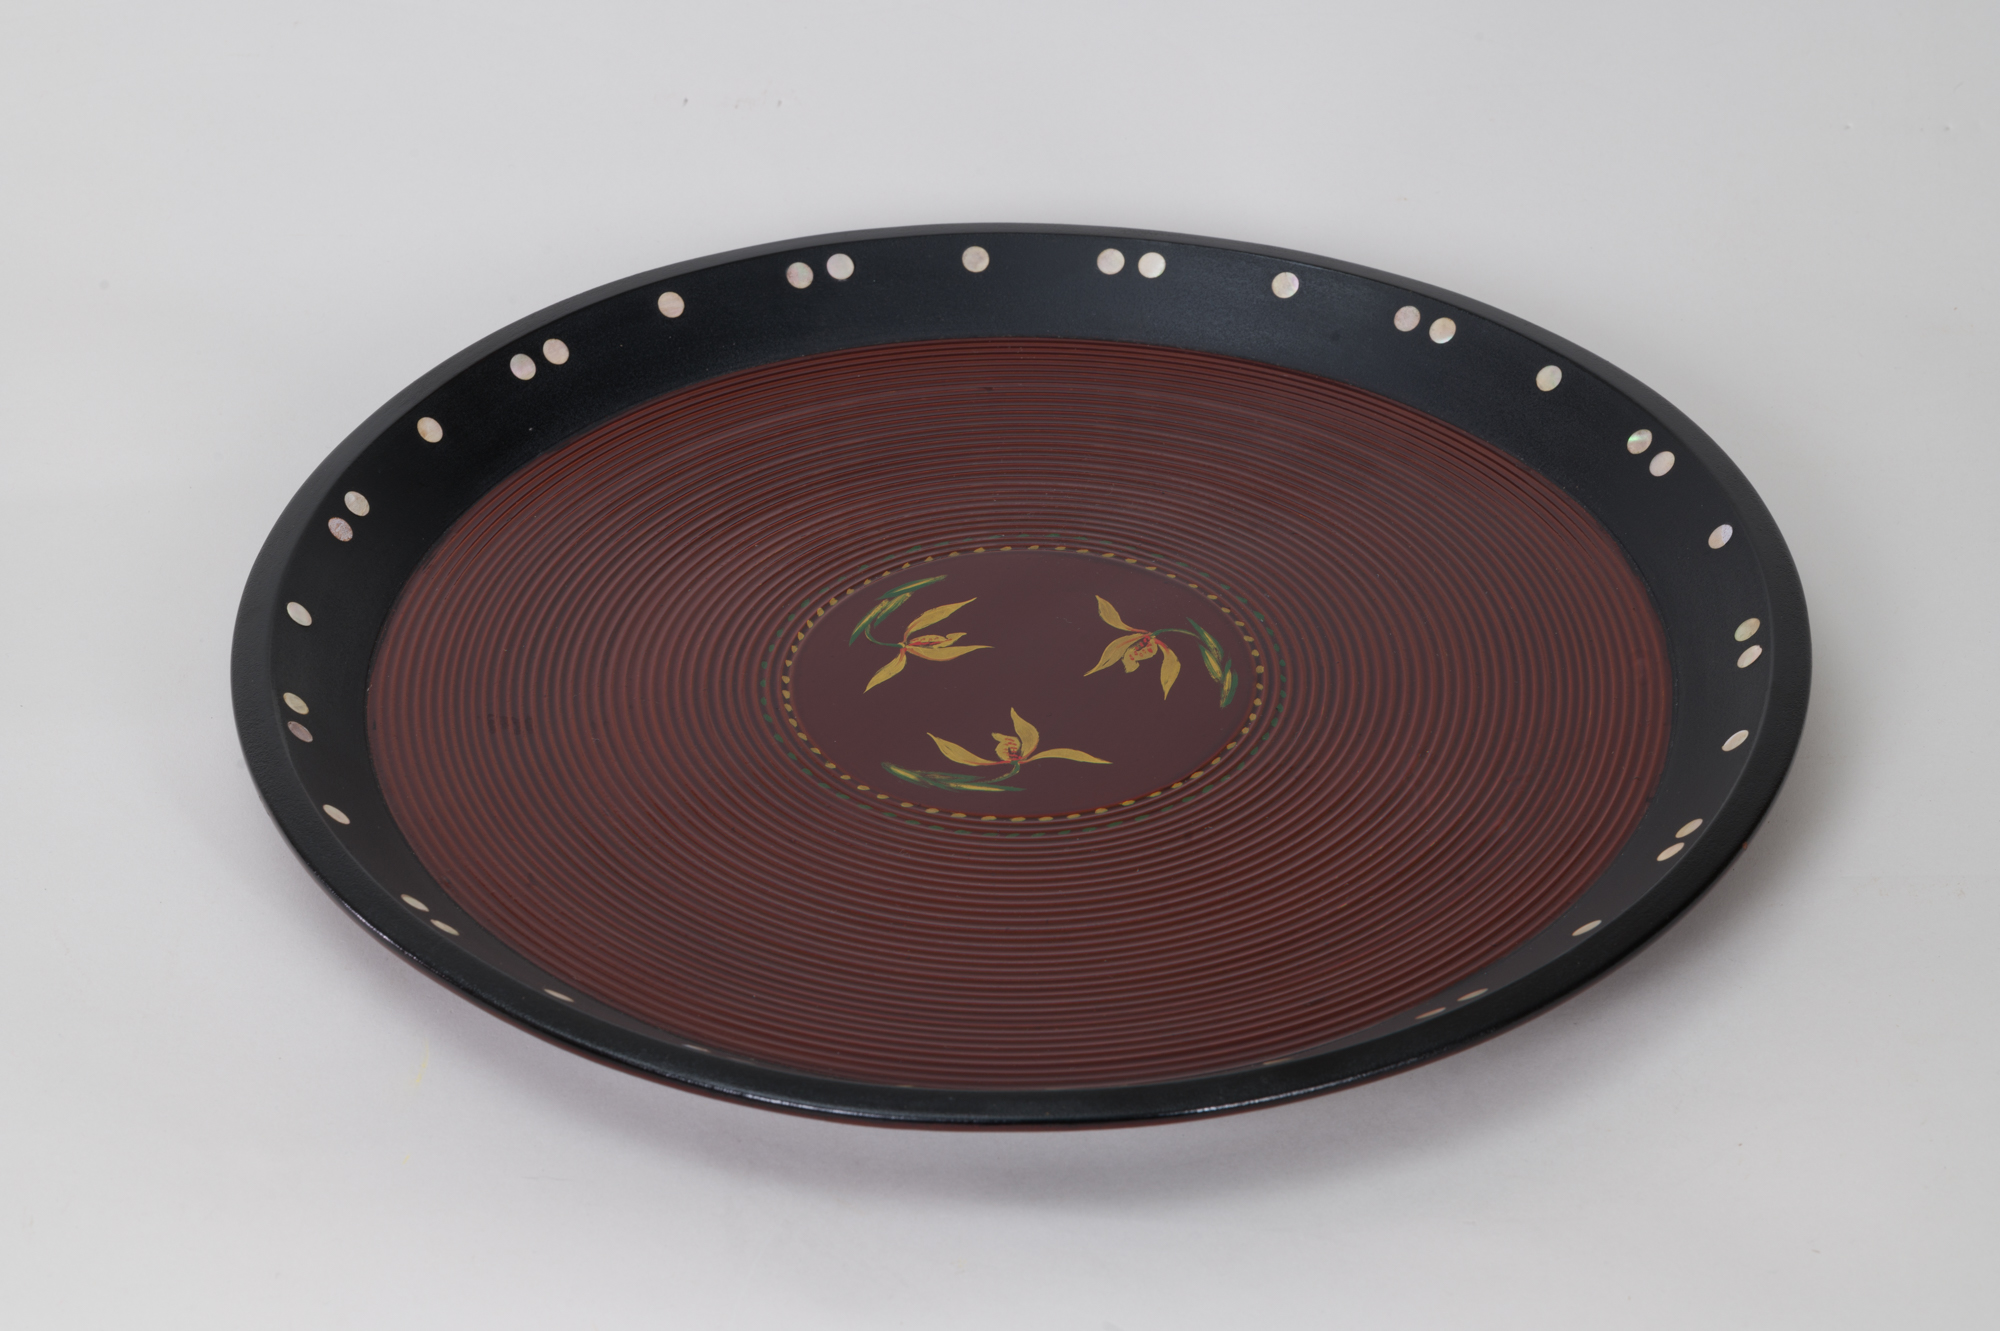 Japanese lacquer, Japanese antique, antique lacquer, Japanese antique lacquer,Japanese art, lacquer tray, antique tray, Japanese tray,